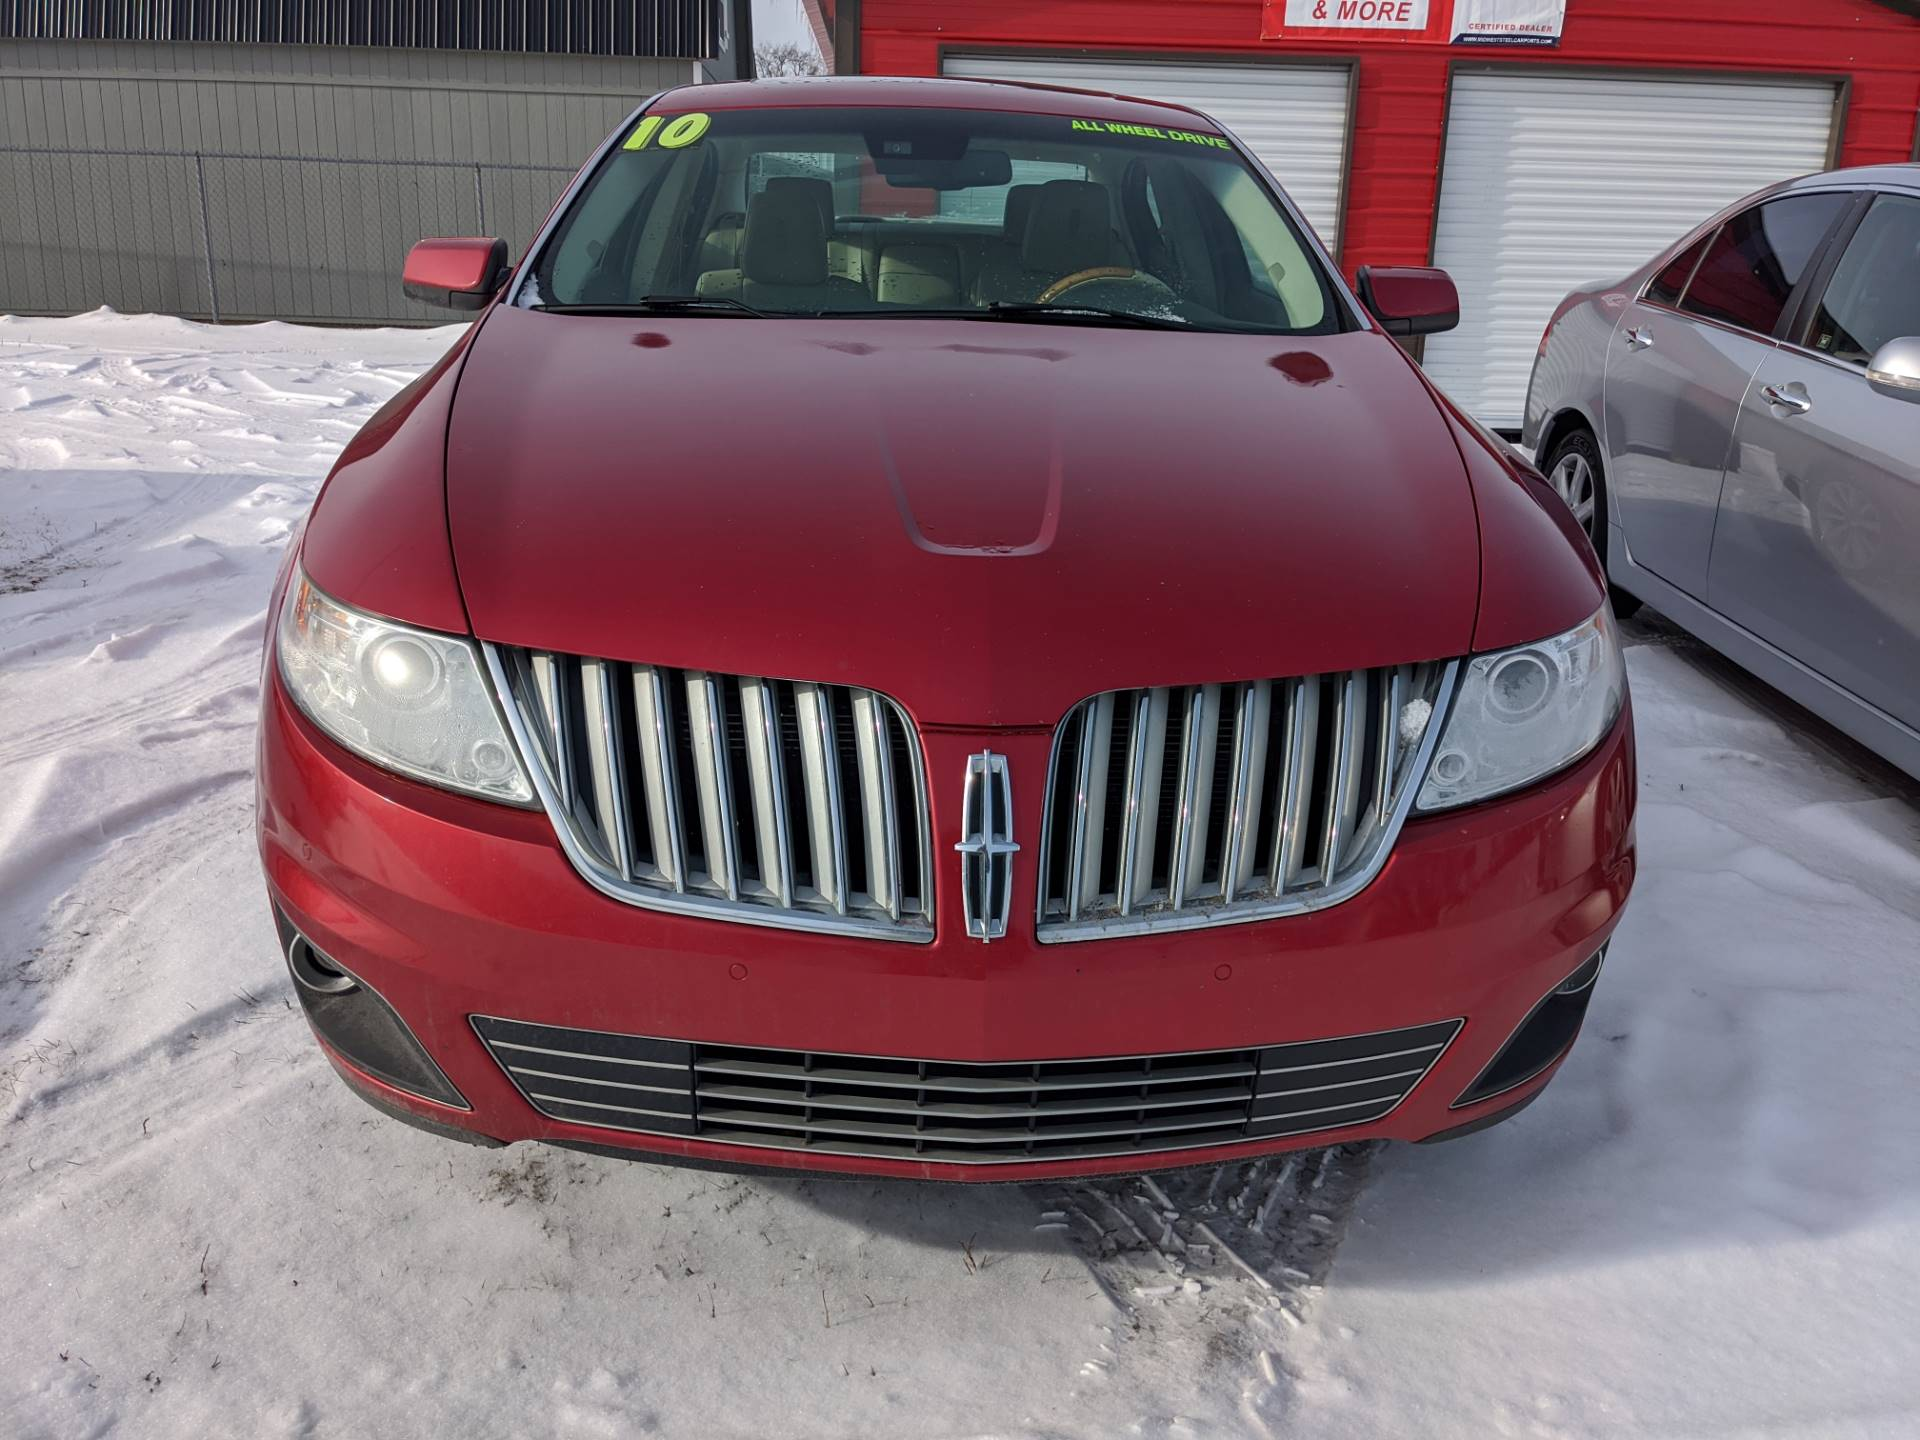 2010 LINCOLN MKS in Harrison, Michigan - Photo 2